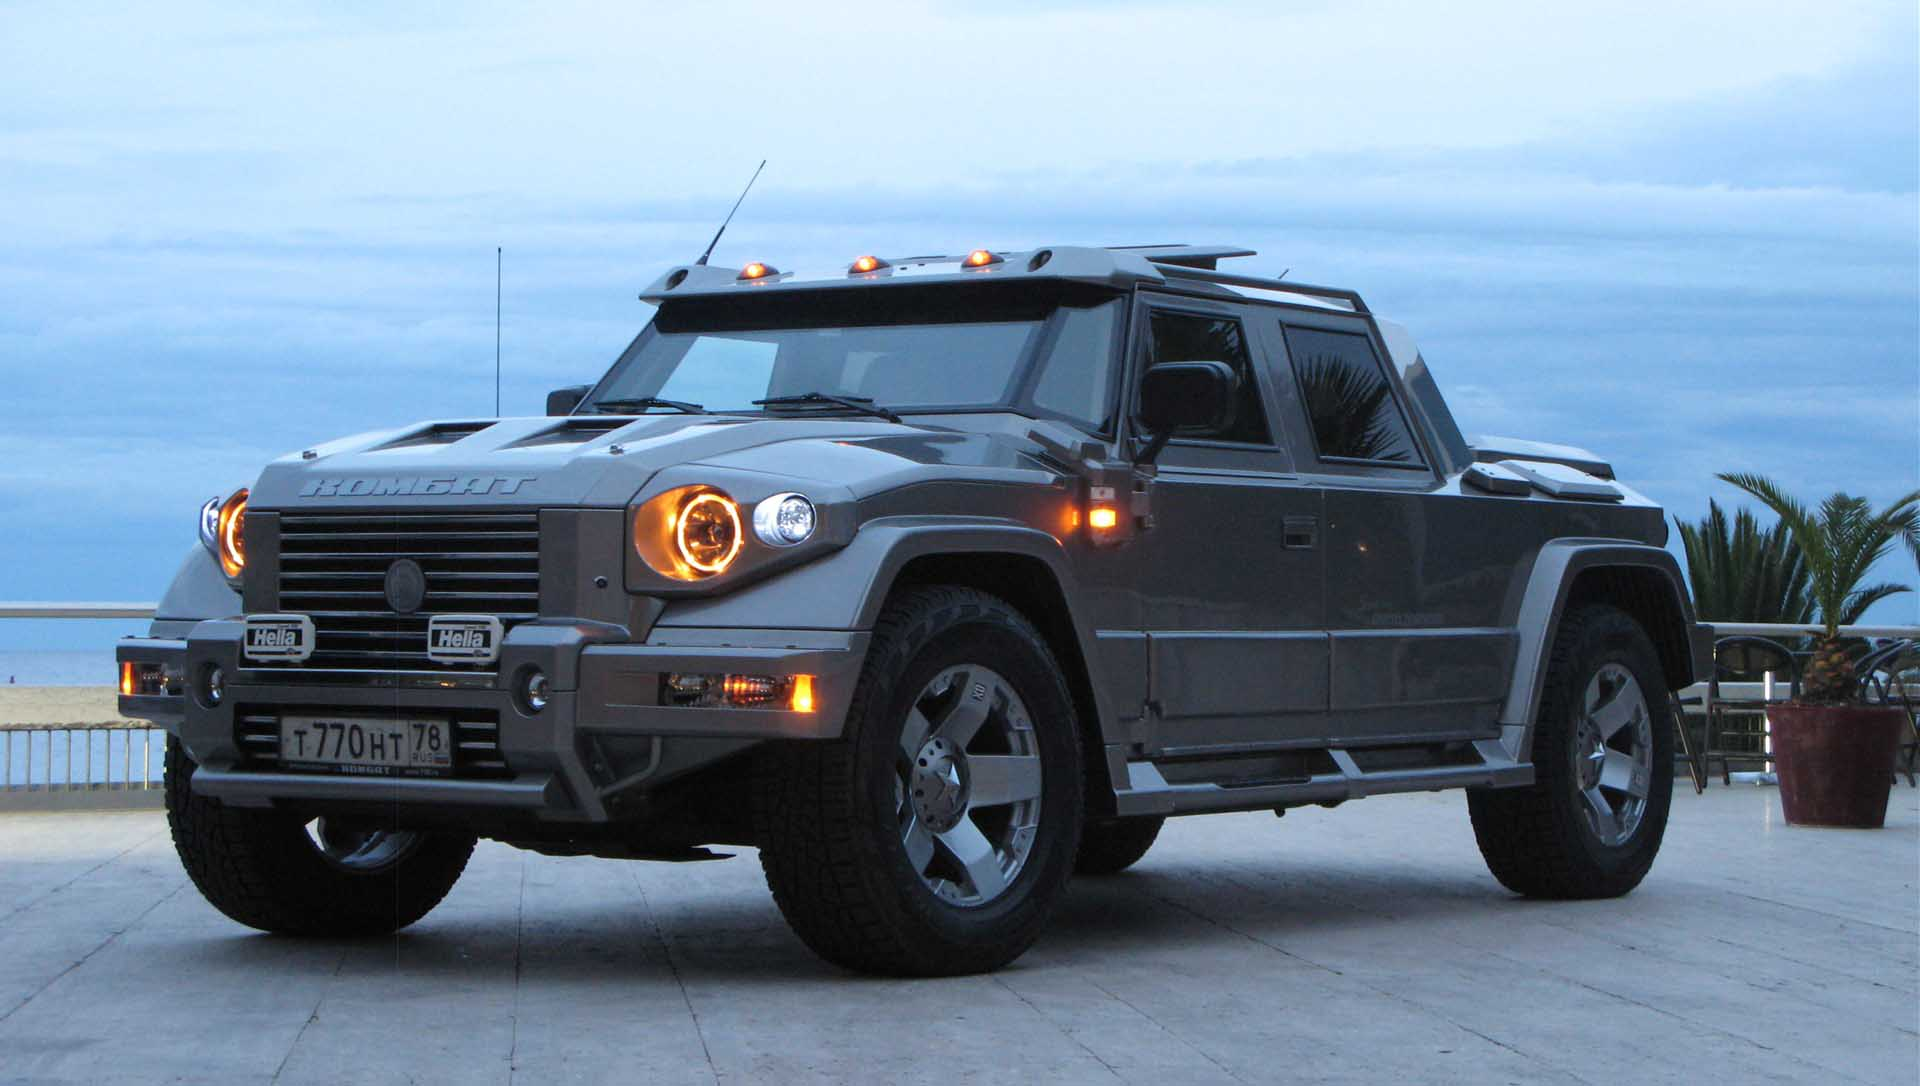 Most Expenisve Arm Vehicle in the World